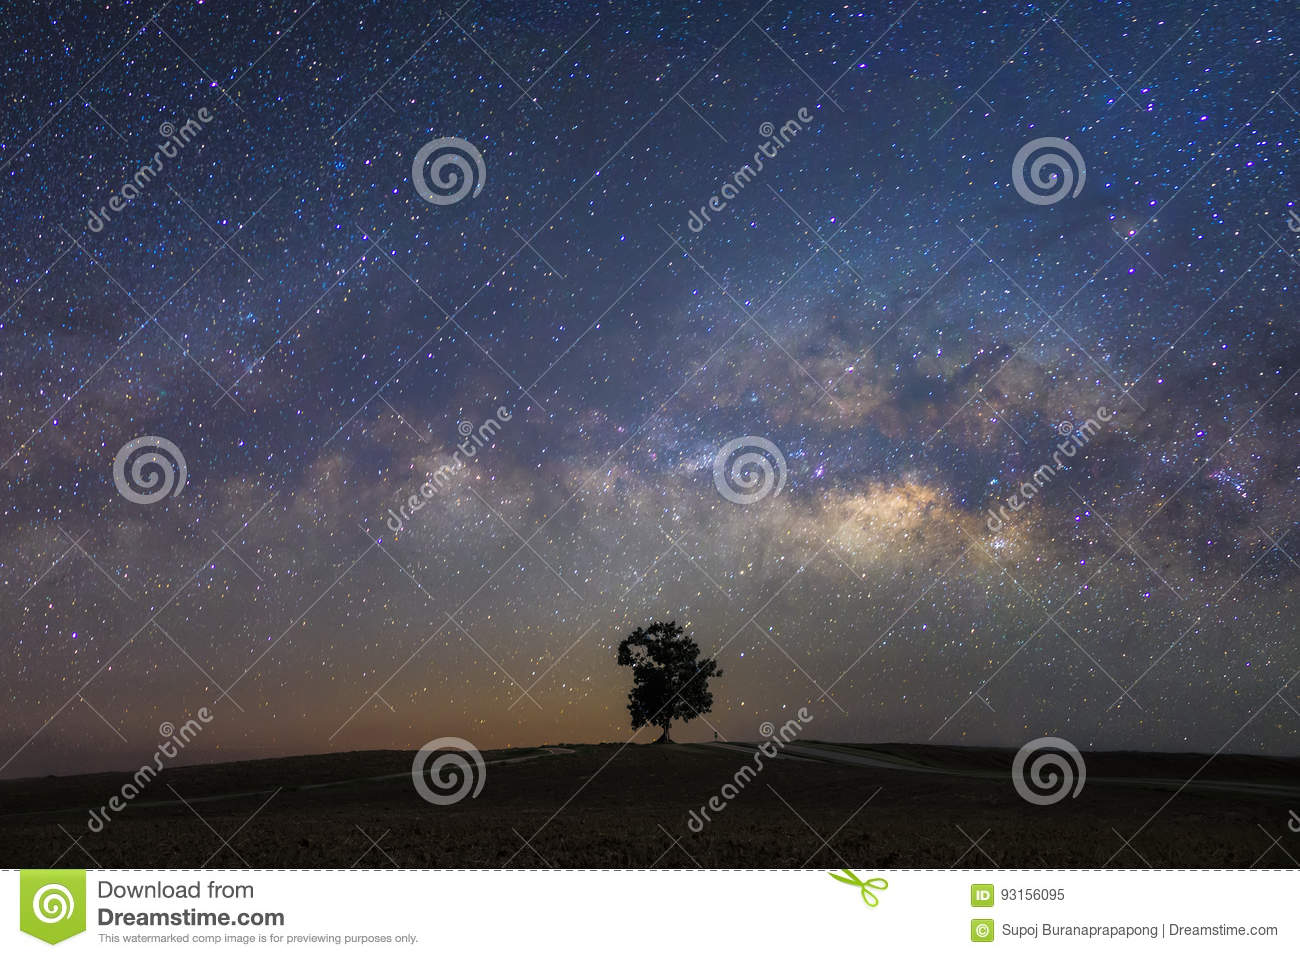 Beautiful milky way with a single treebackground.Landscape with